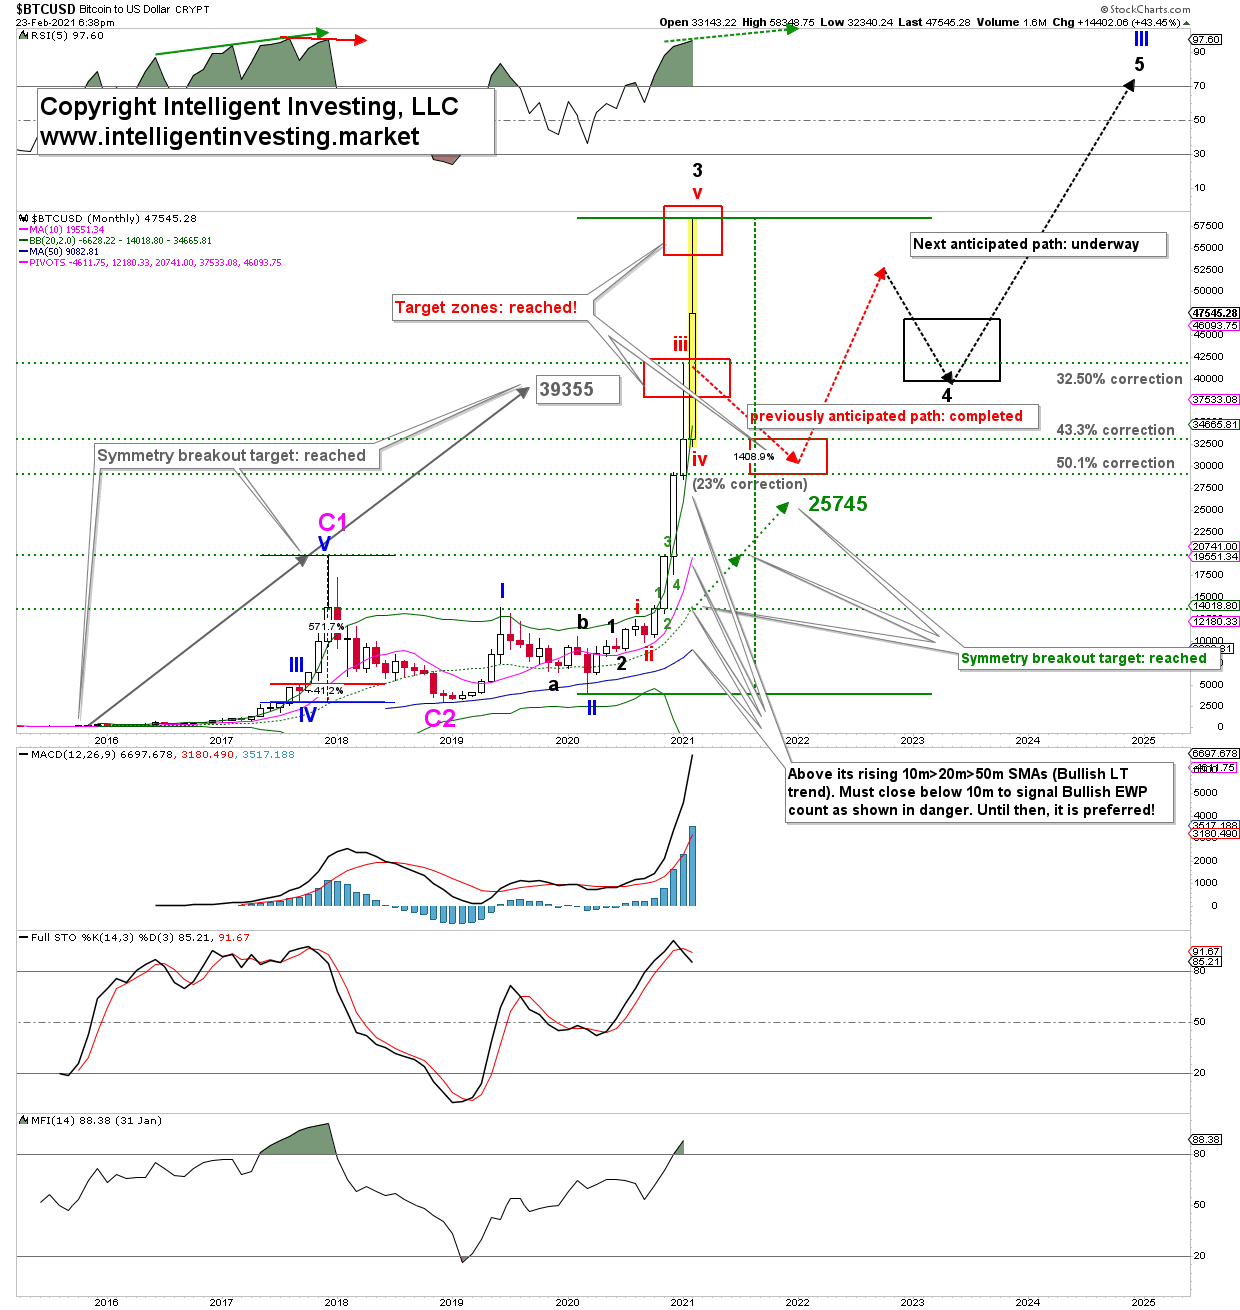 Bitcoin Monthly Chart With EWP Count.